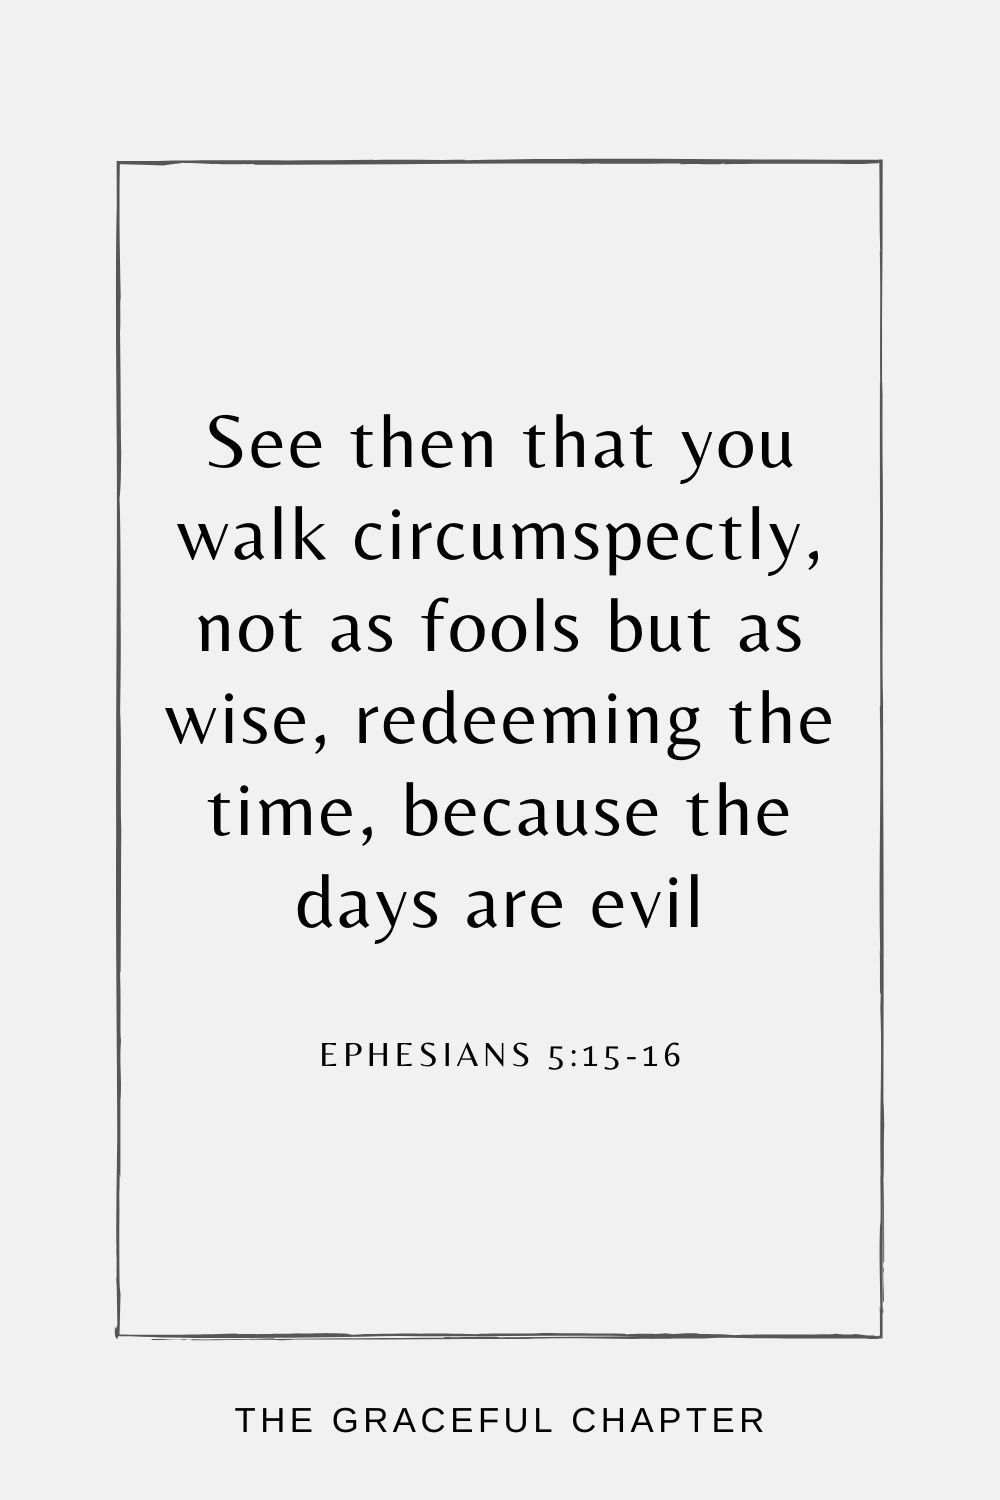 See then that you walk circumspectly, not as fools but as wise, redeeming the time, because the days are evil Ephesians 5:15-16